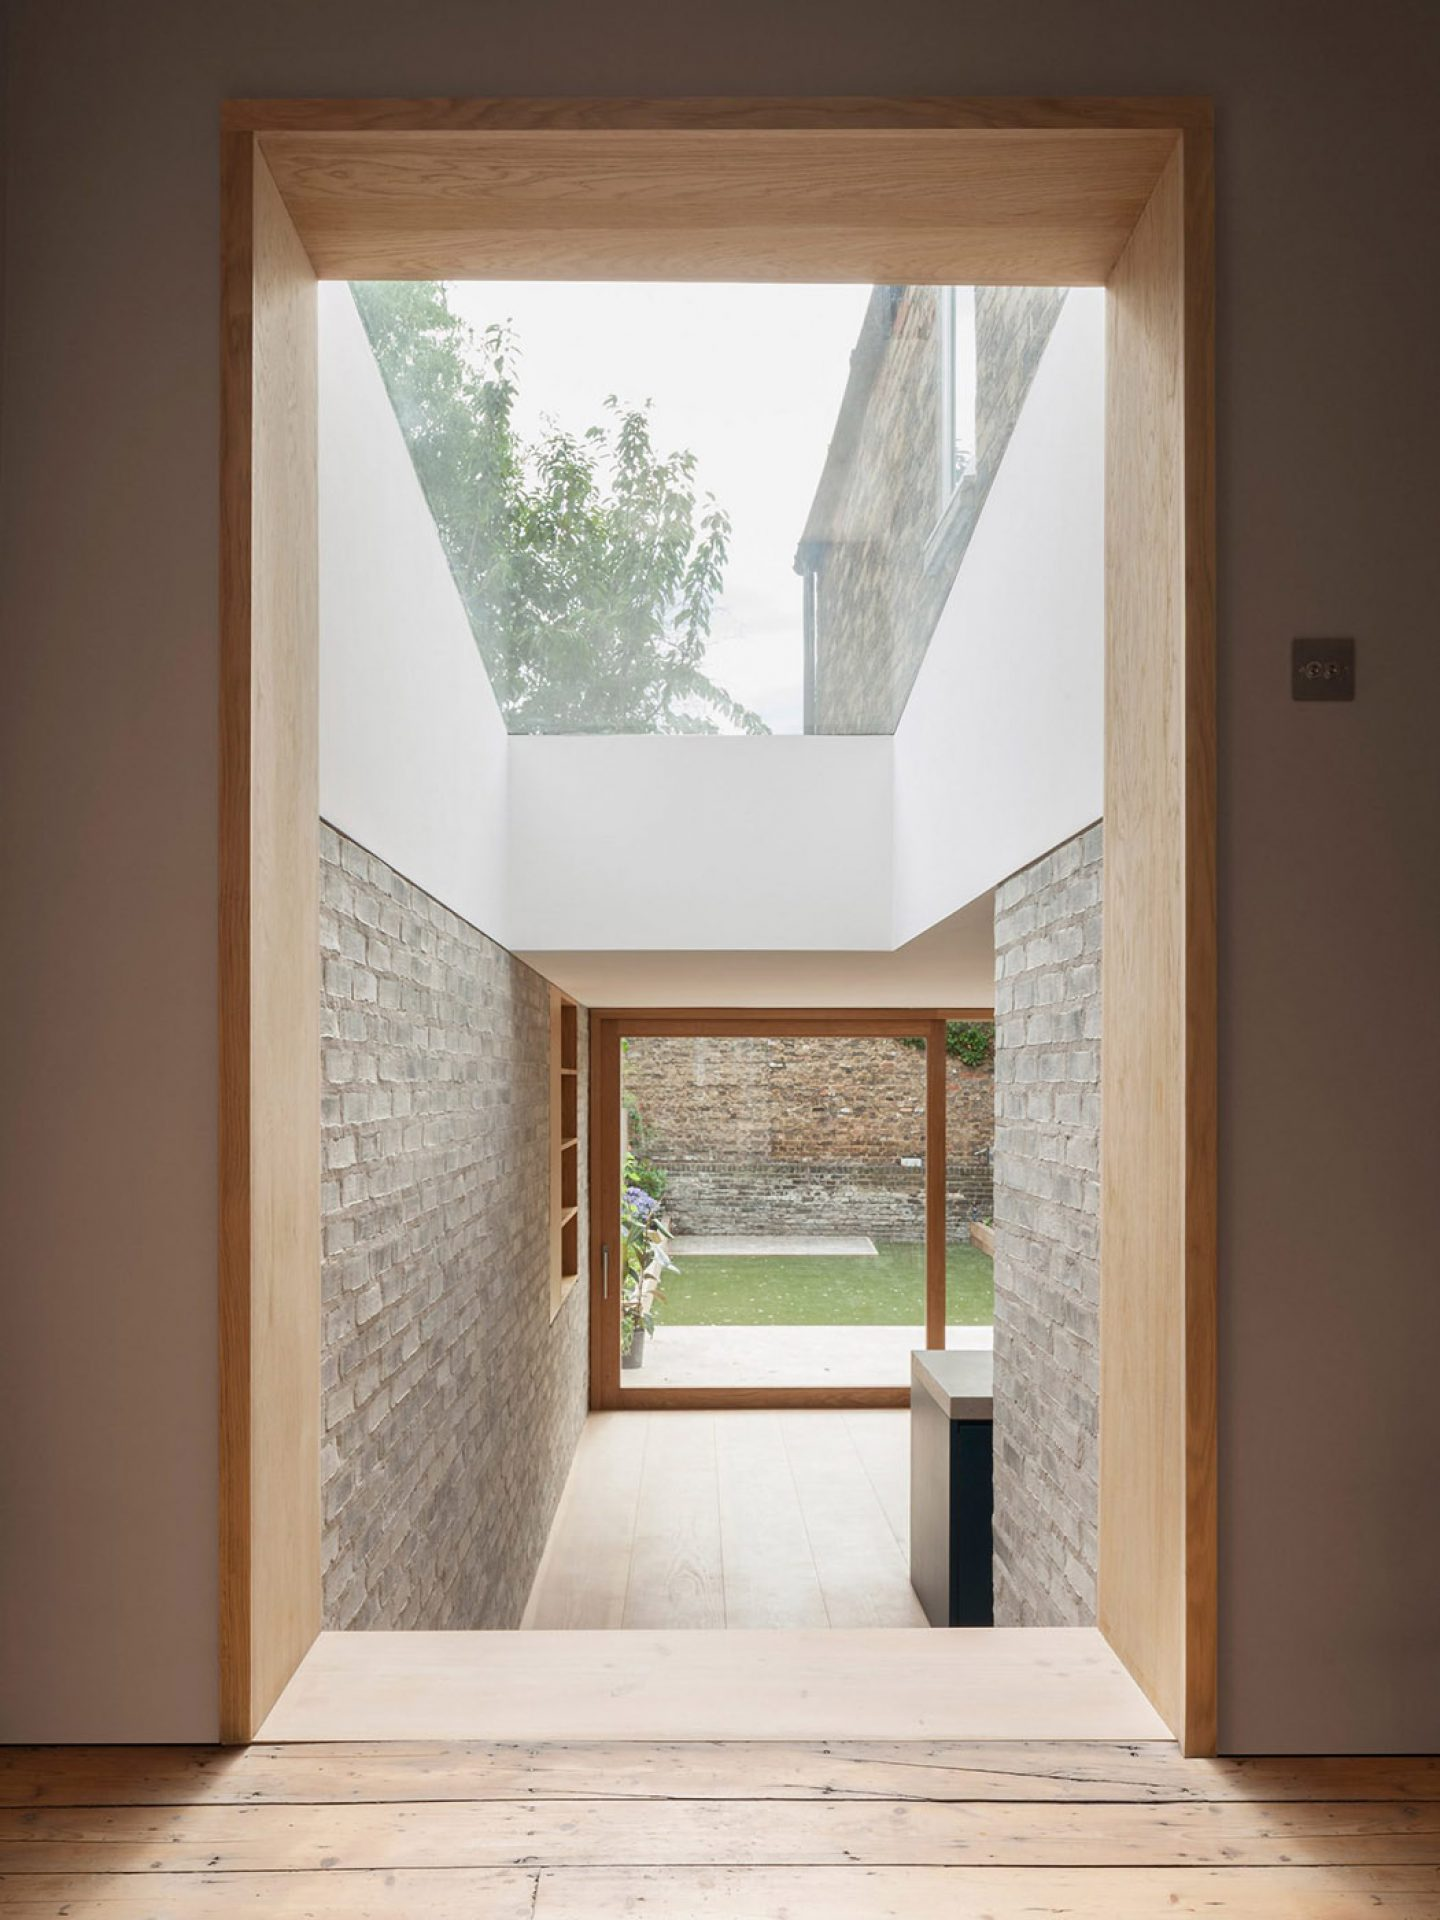 iGNANT_Architecture_AlJawad_Pike_London_Stoke_Newington_Renovation_5